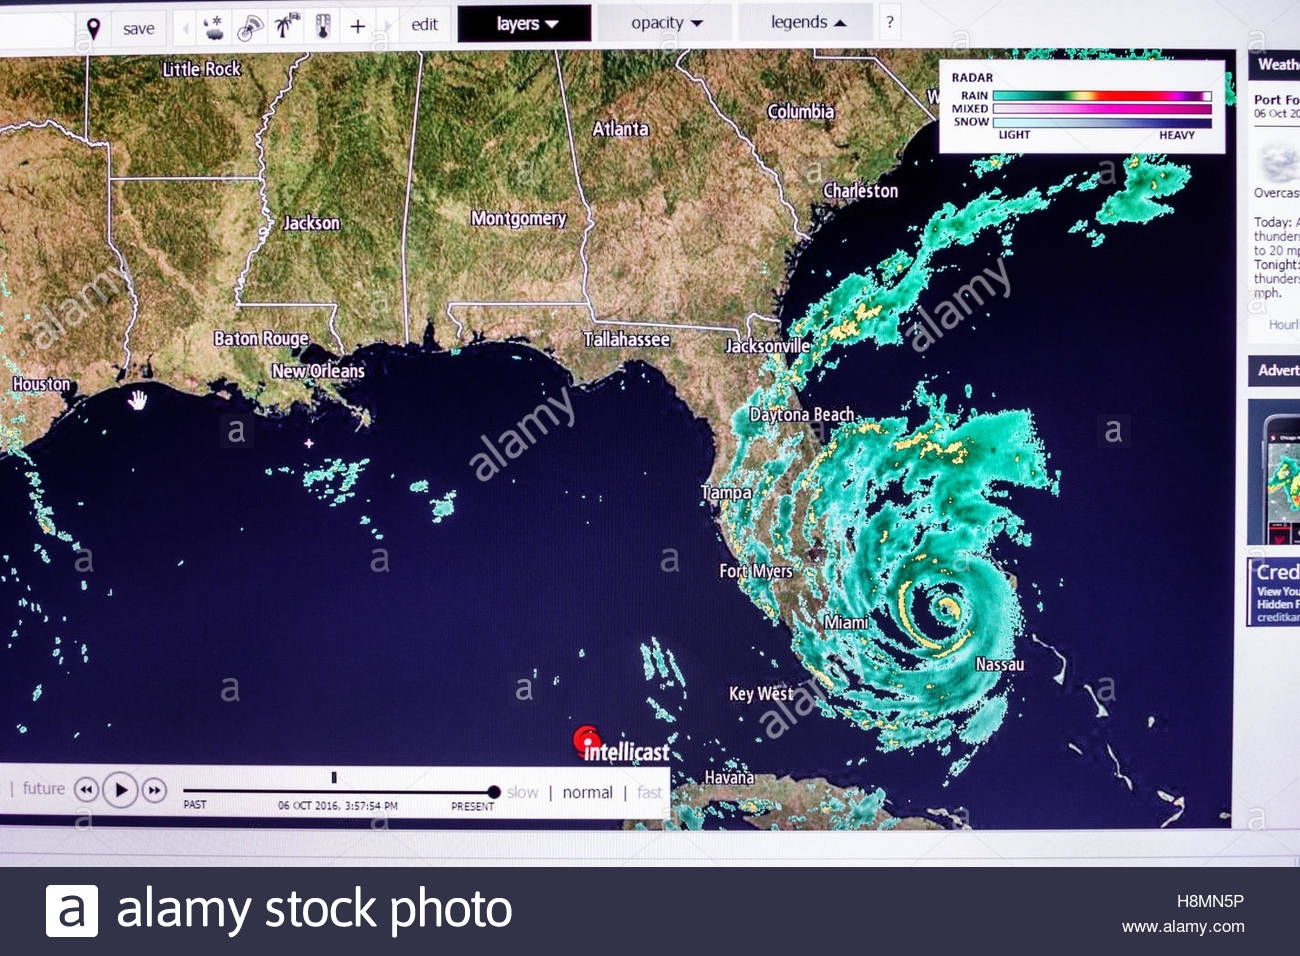 Doppler Radar Weather Map Of The Entire Contiguous United with regard to Miami Florida Weather Map